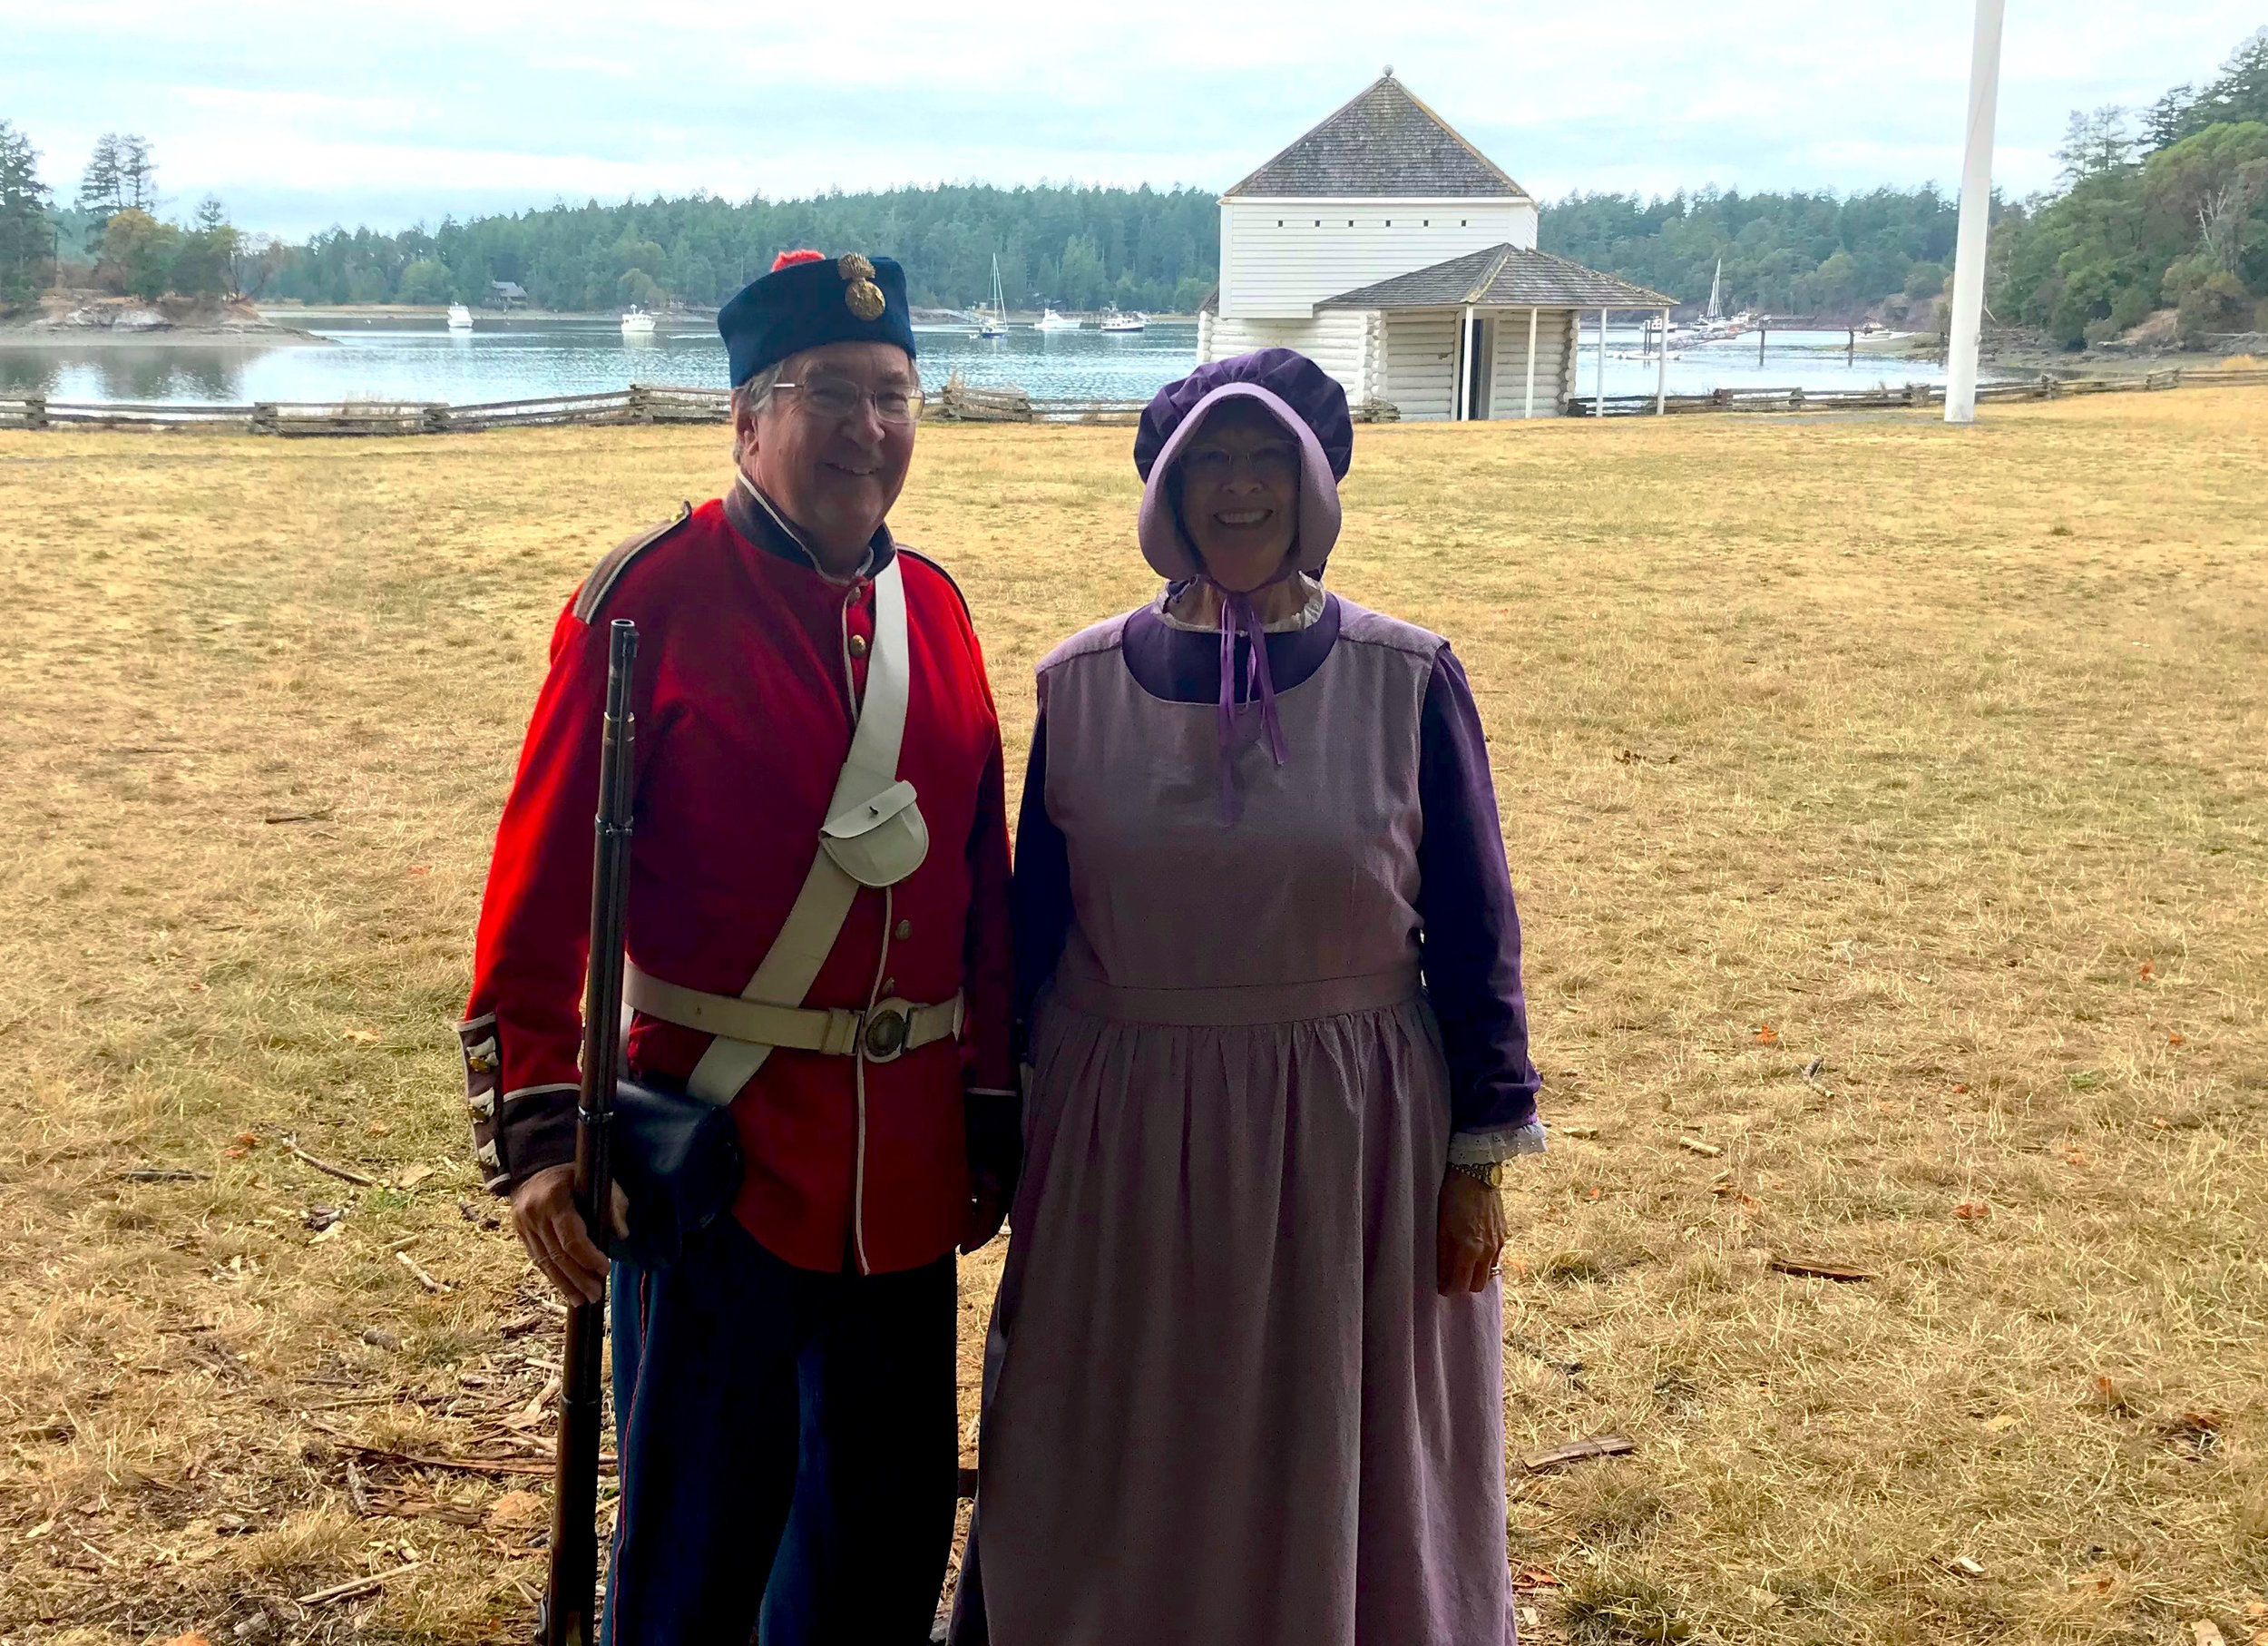 Enjoy re-enactments of the Pig War and 19th Century life every Summer Saturday at English Camp National Historical Park